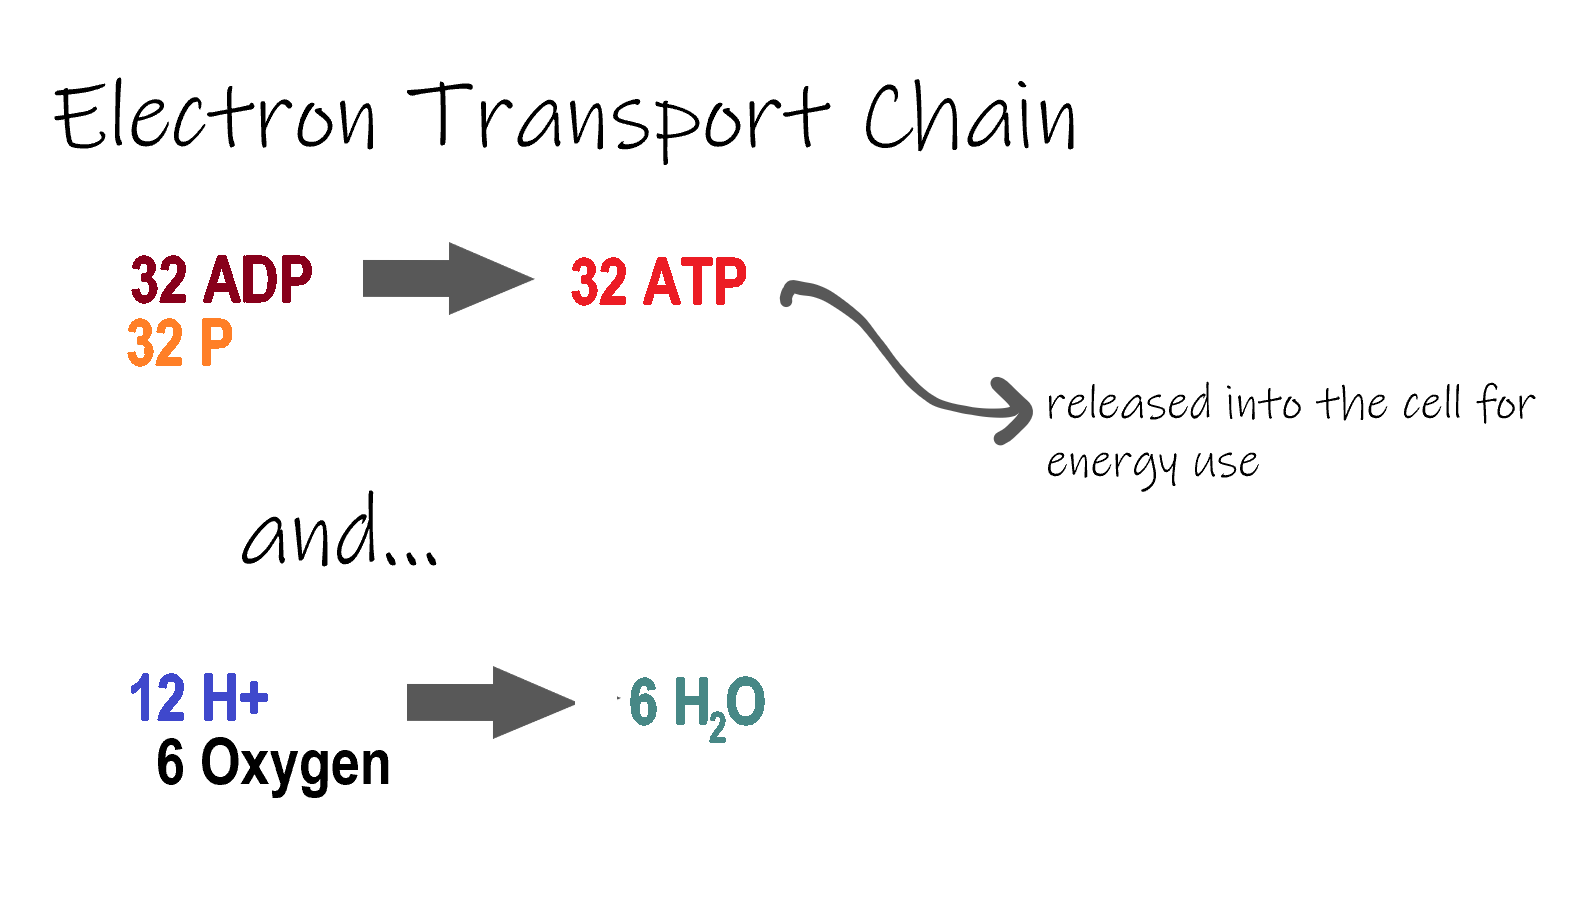 Image shows the reactants and products of the electron transport chain. In this stage, 32 adenosine diphosphate and 32 inorganic phosphates combine to form 32 ATP. In addition, hydrogen and oxygen combine to form 6 molecules of water.